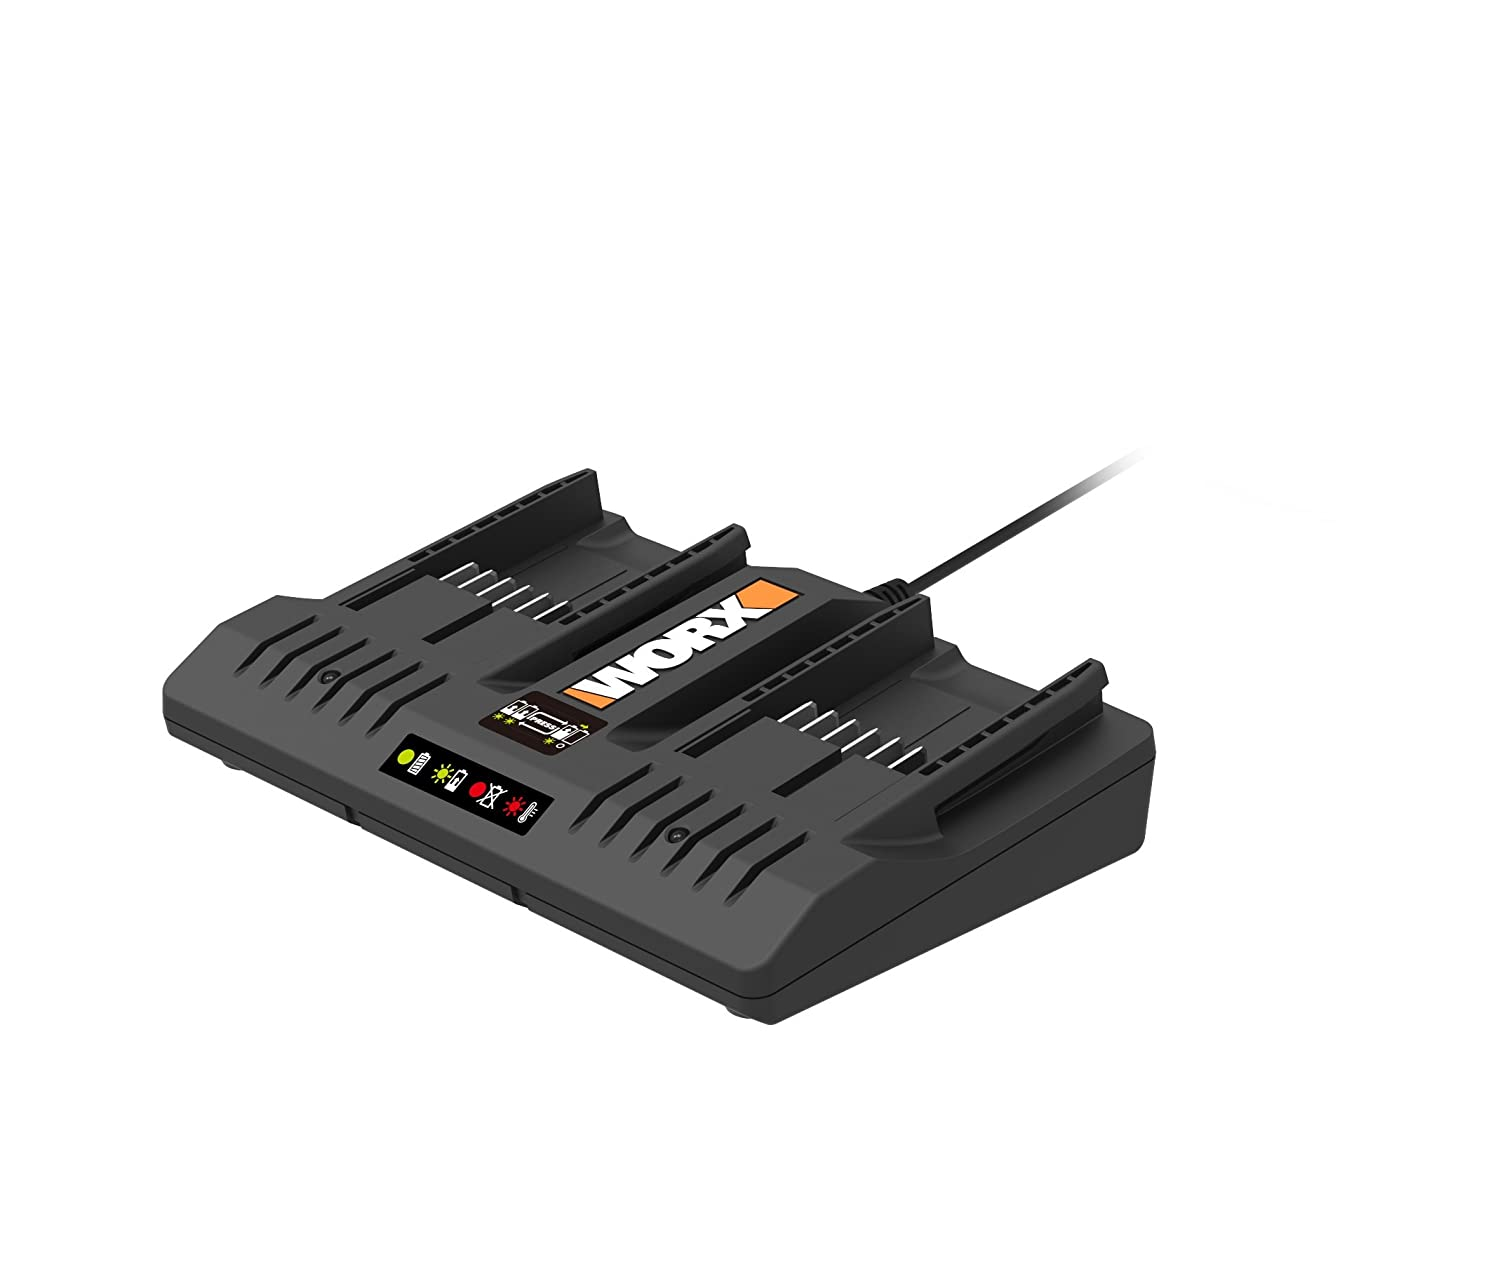 WORX WA3875 20V Li-Ion Dual Port 2 Hour Charger